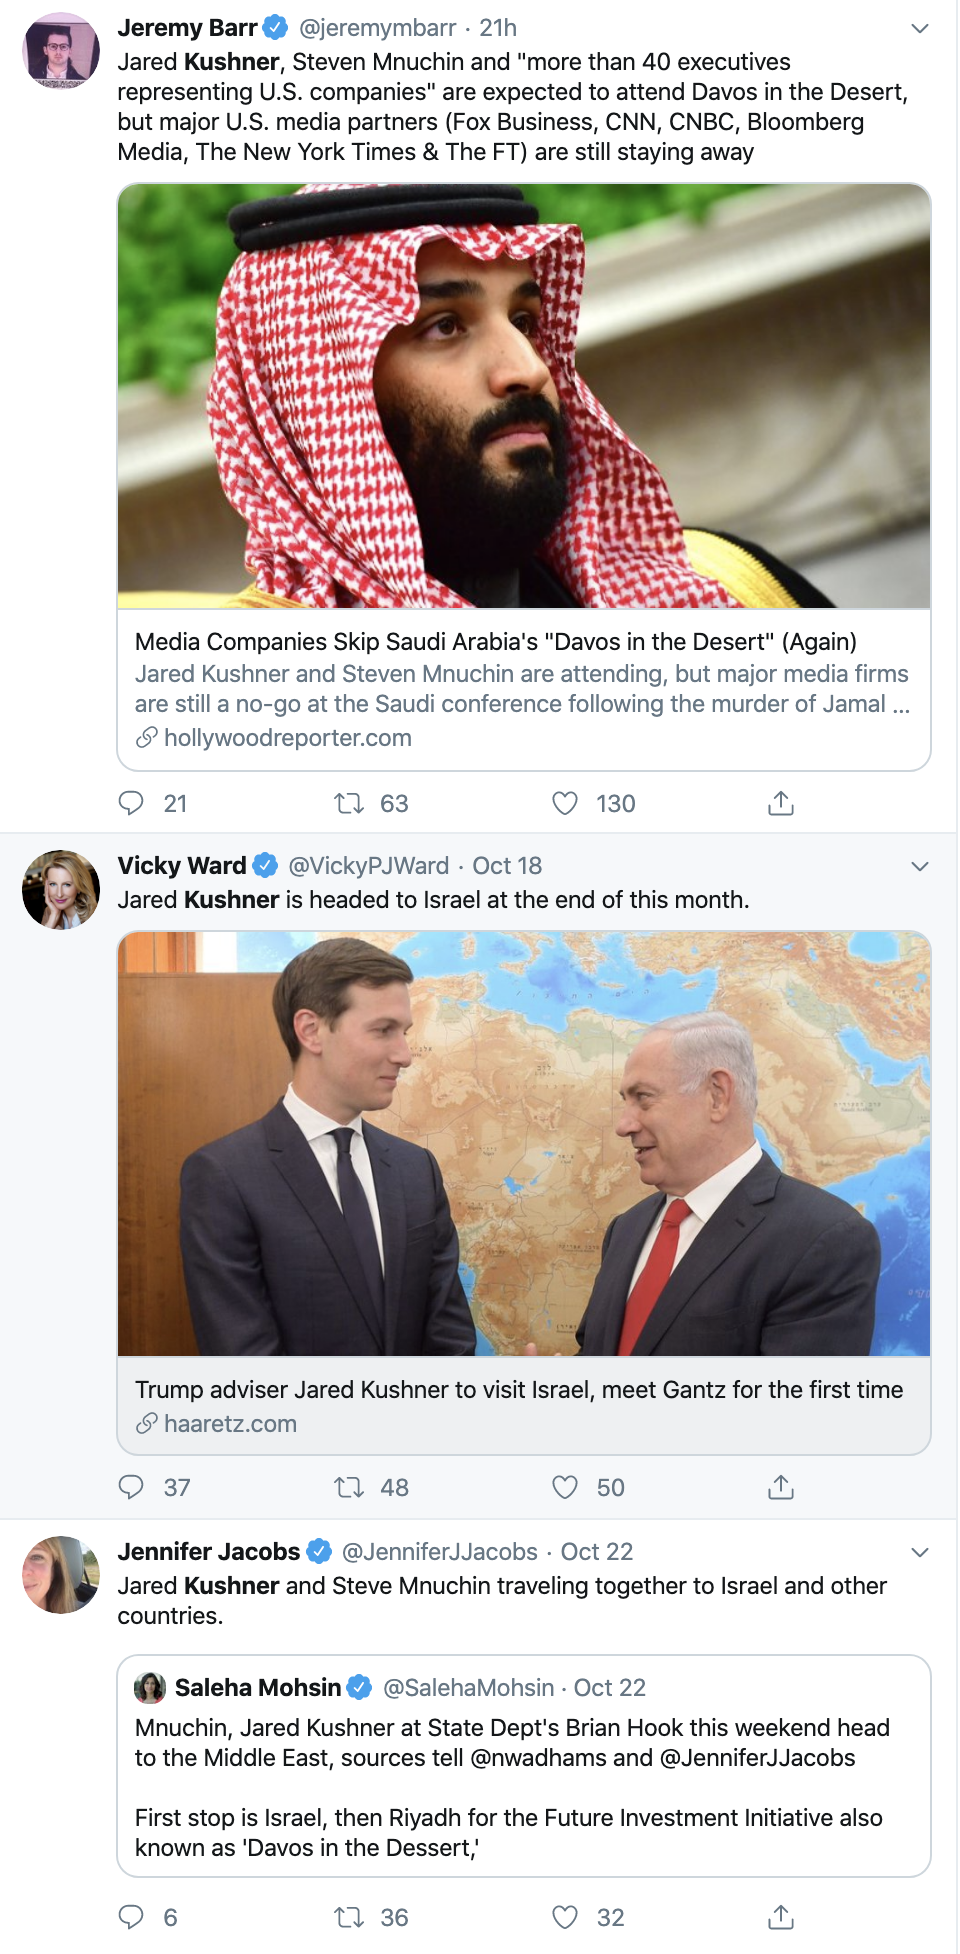 Screen-Shot-2019-10-23-at-12.43.45-PM Attorney General Hits Jared Kushner With Widespread Legal Action Civil Rights Corruption Crime Domestic Policy Donald Trump Featured Healthcare Politics Poverty Racism Scandal Top Stories White Privilege White Supremacy